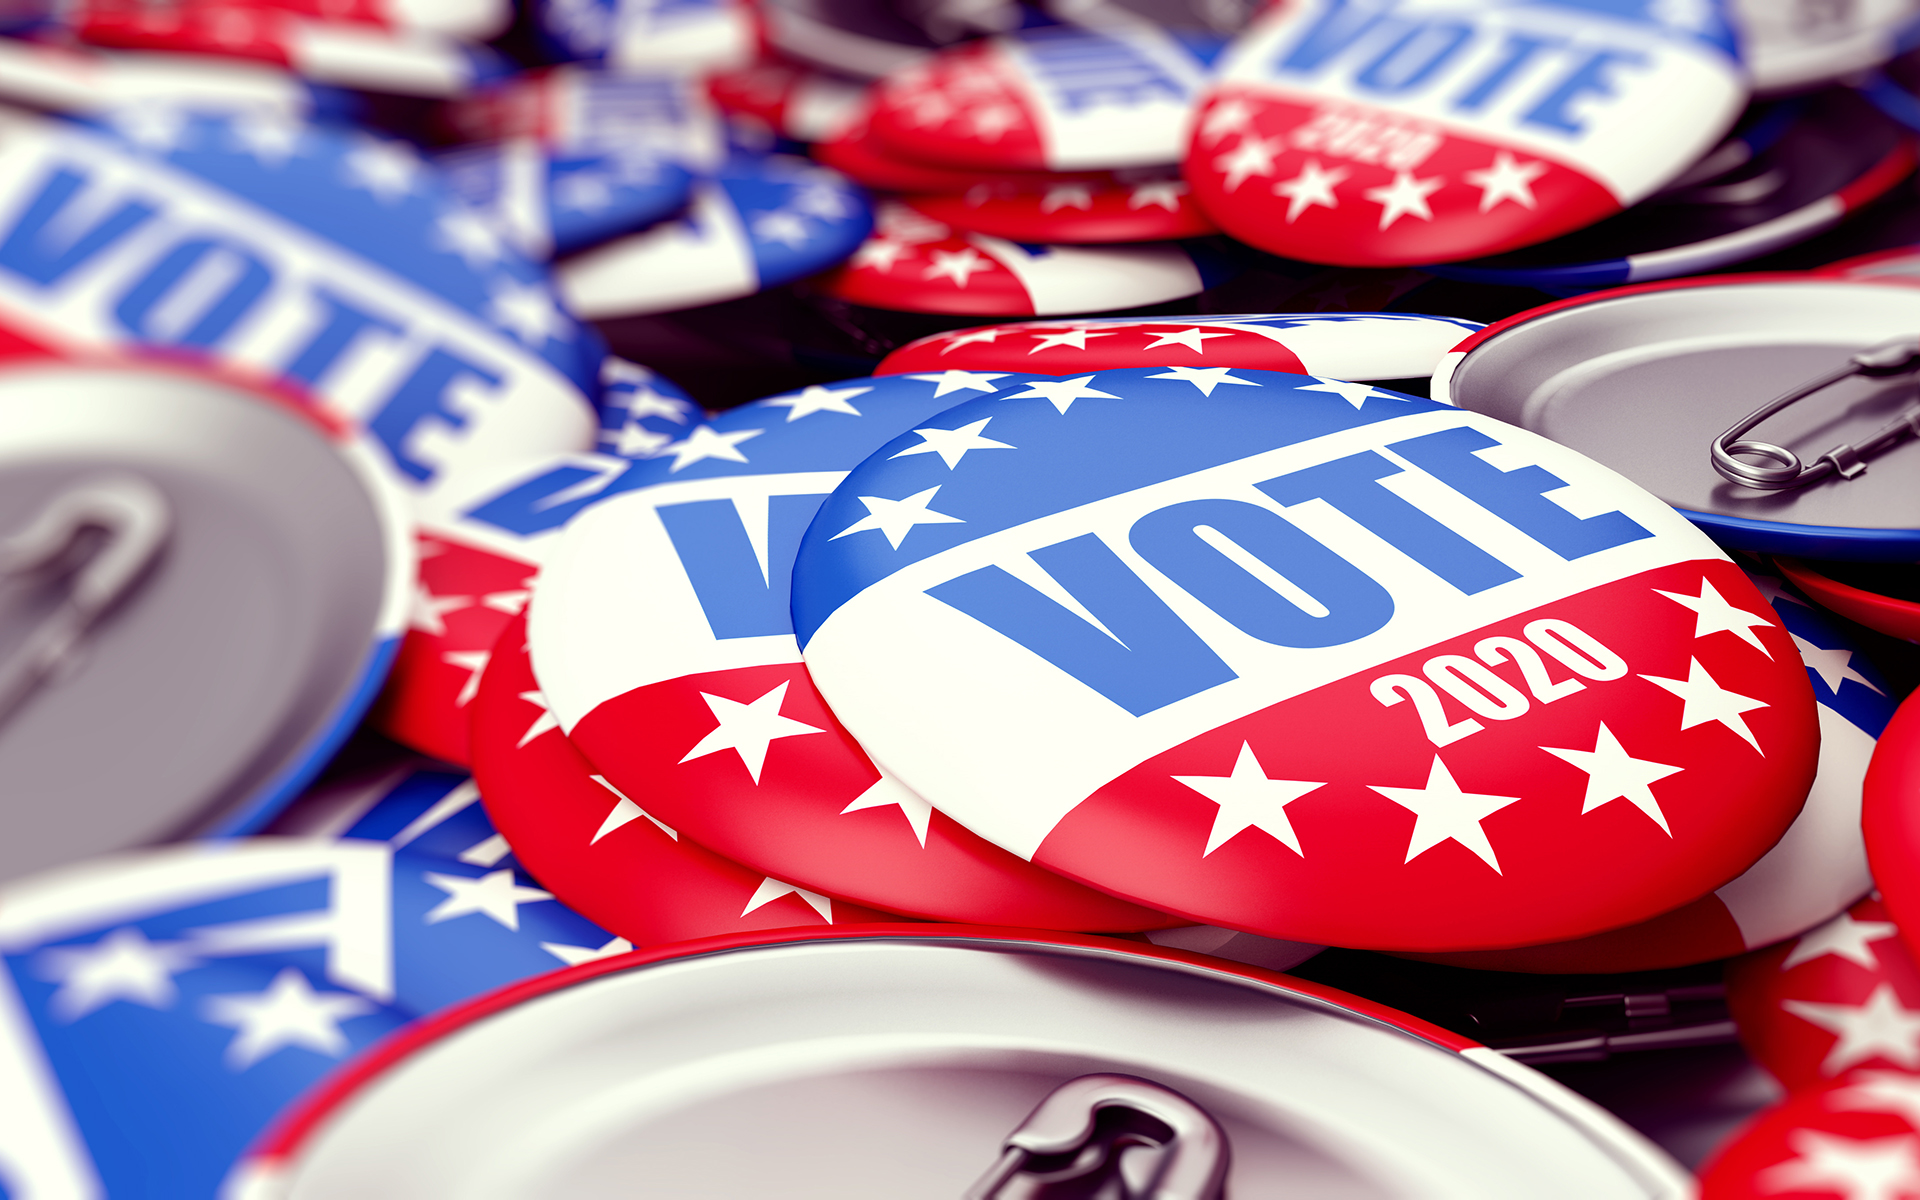 3 Mindful Resources for Election Day - vote election badge button for 2020 background, vote USA 2020, 3D illustration, 3D rendering